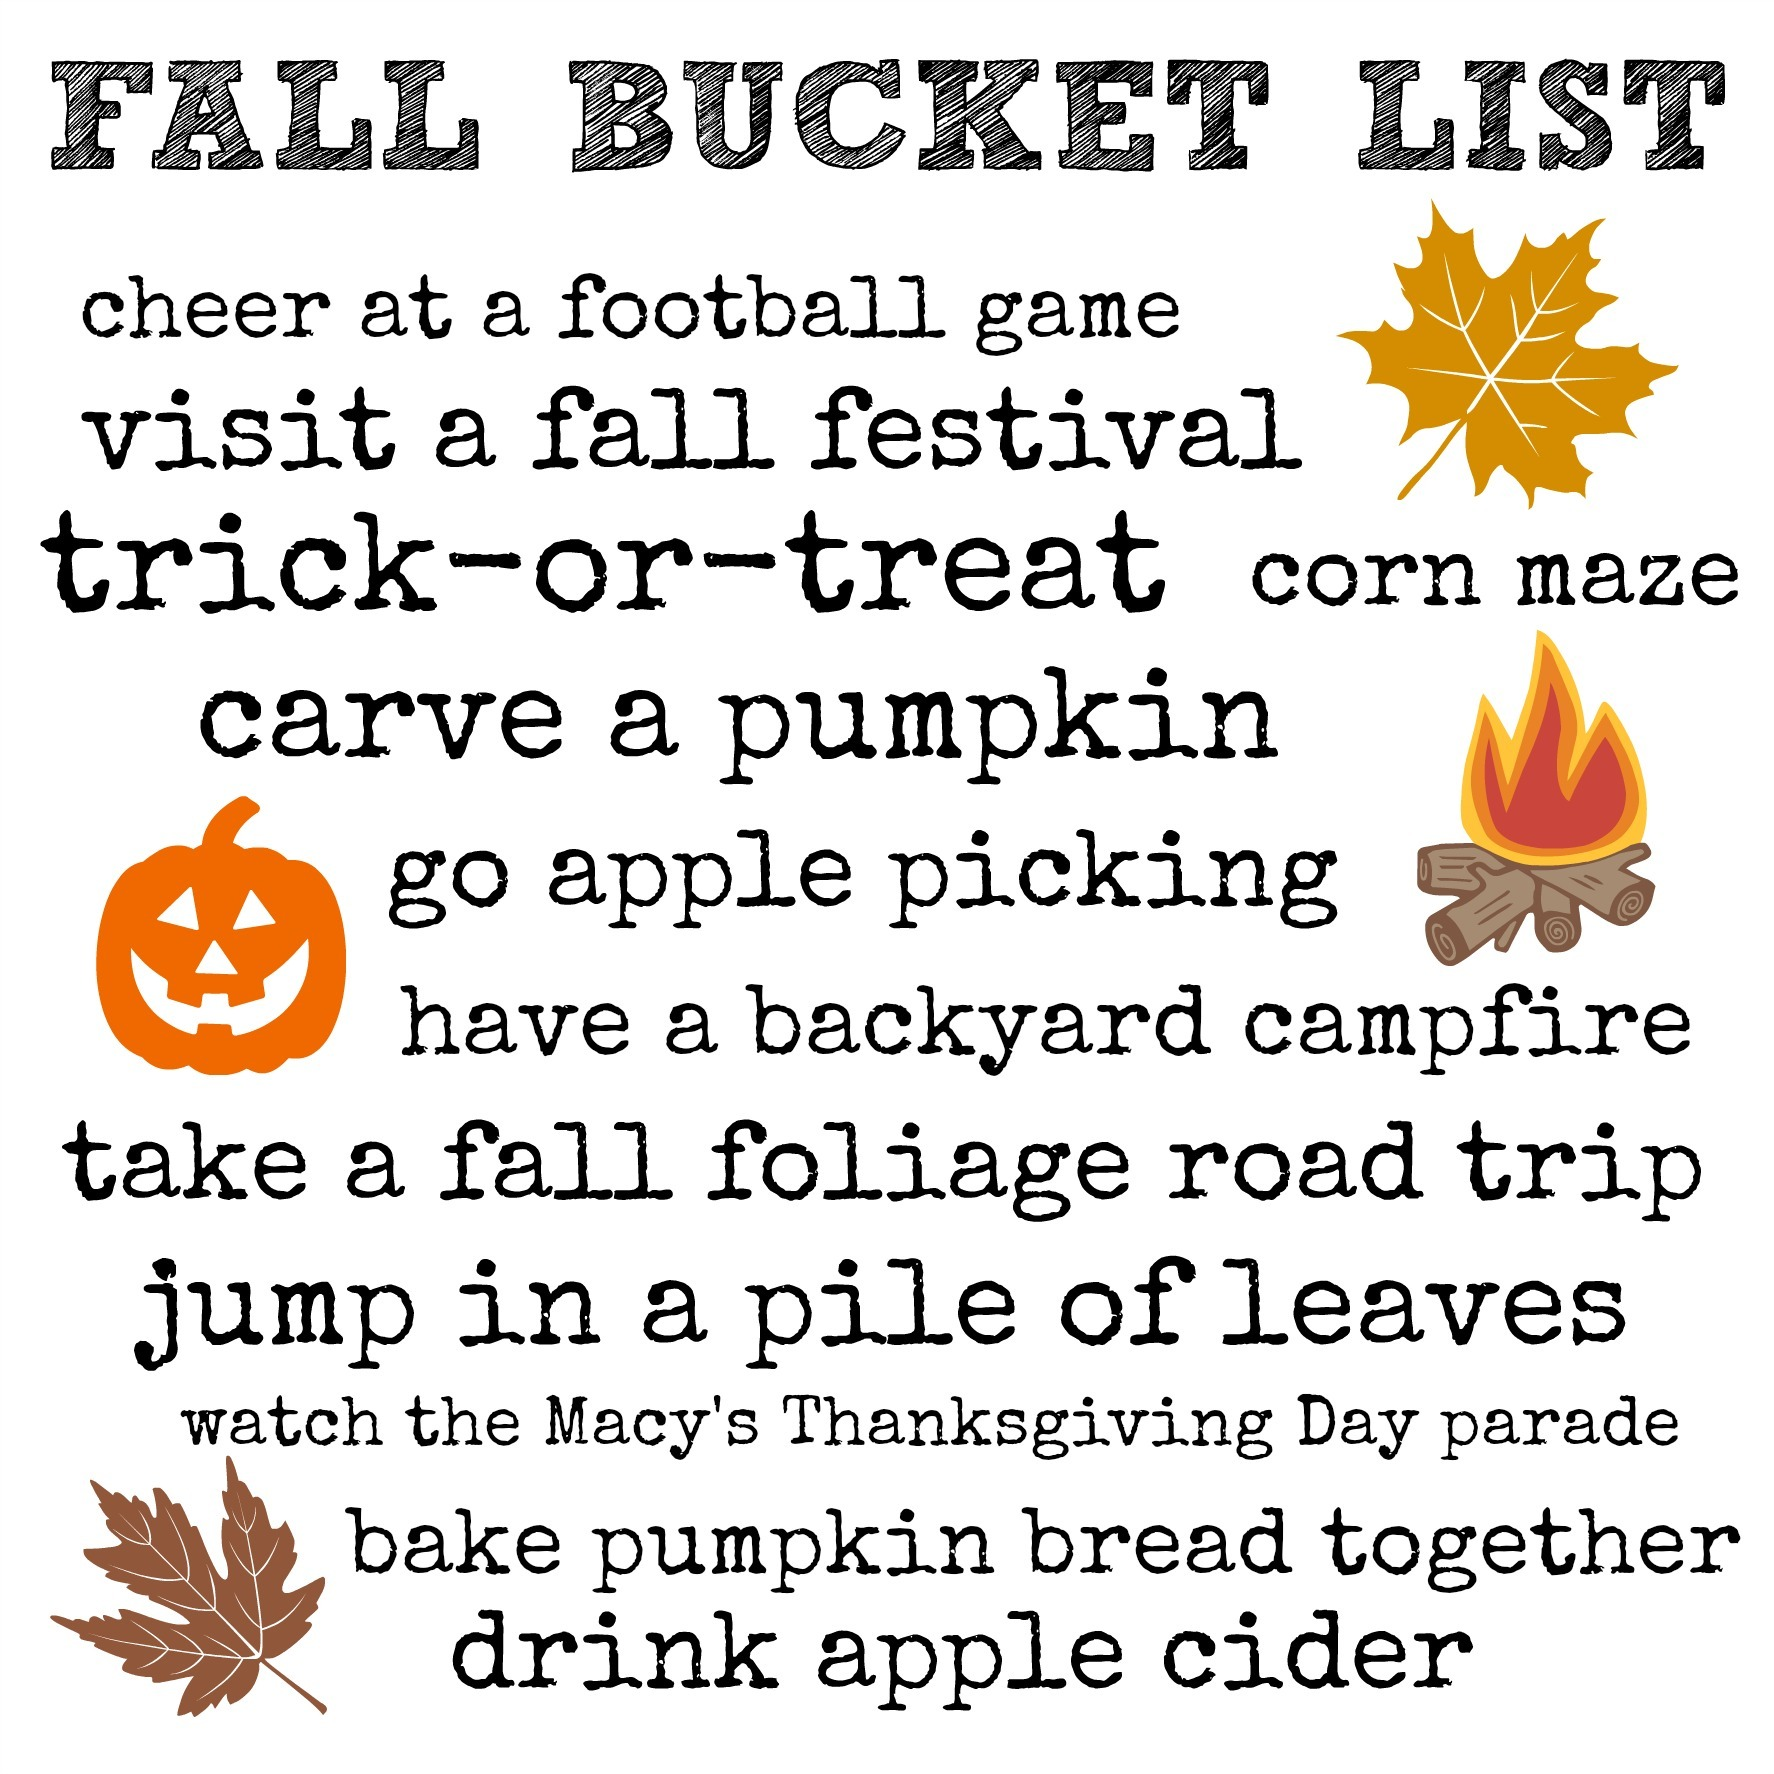 Fall Bucket List 2016 - free printable Fall Bucket List